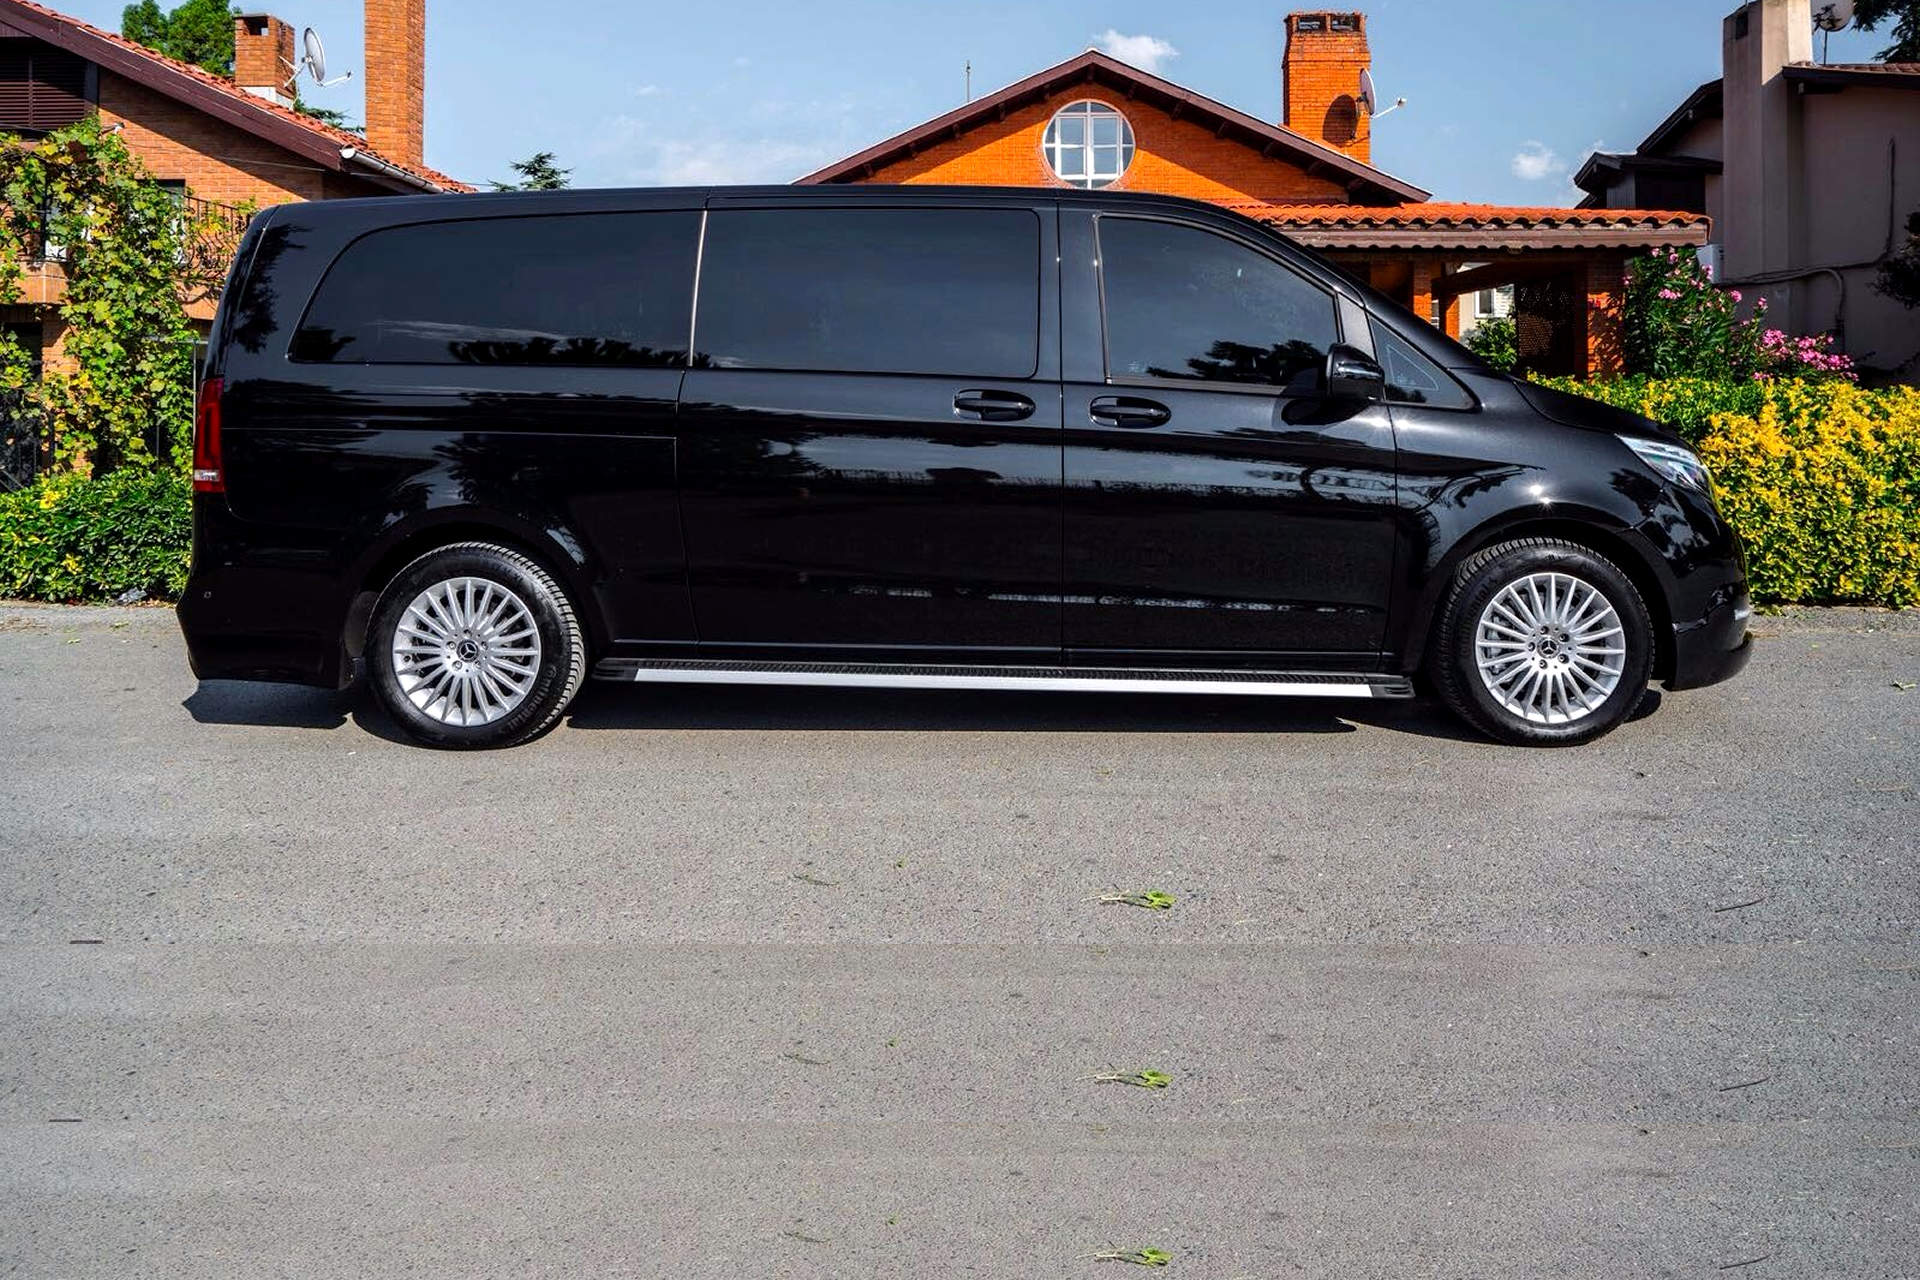 exclusive vip transfer